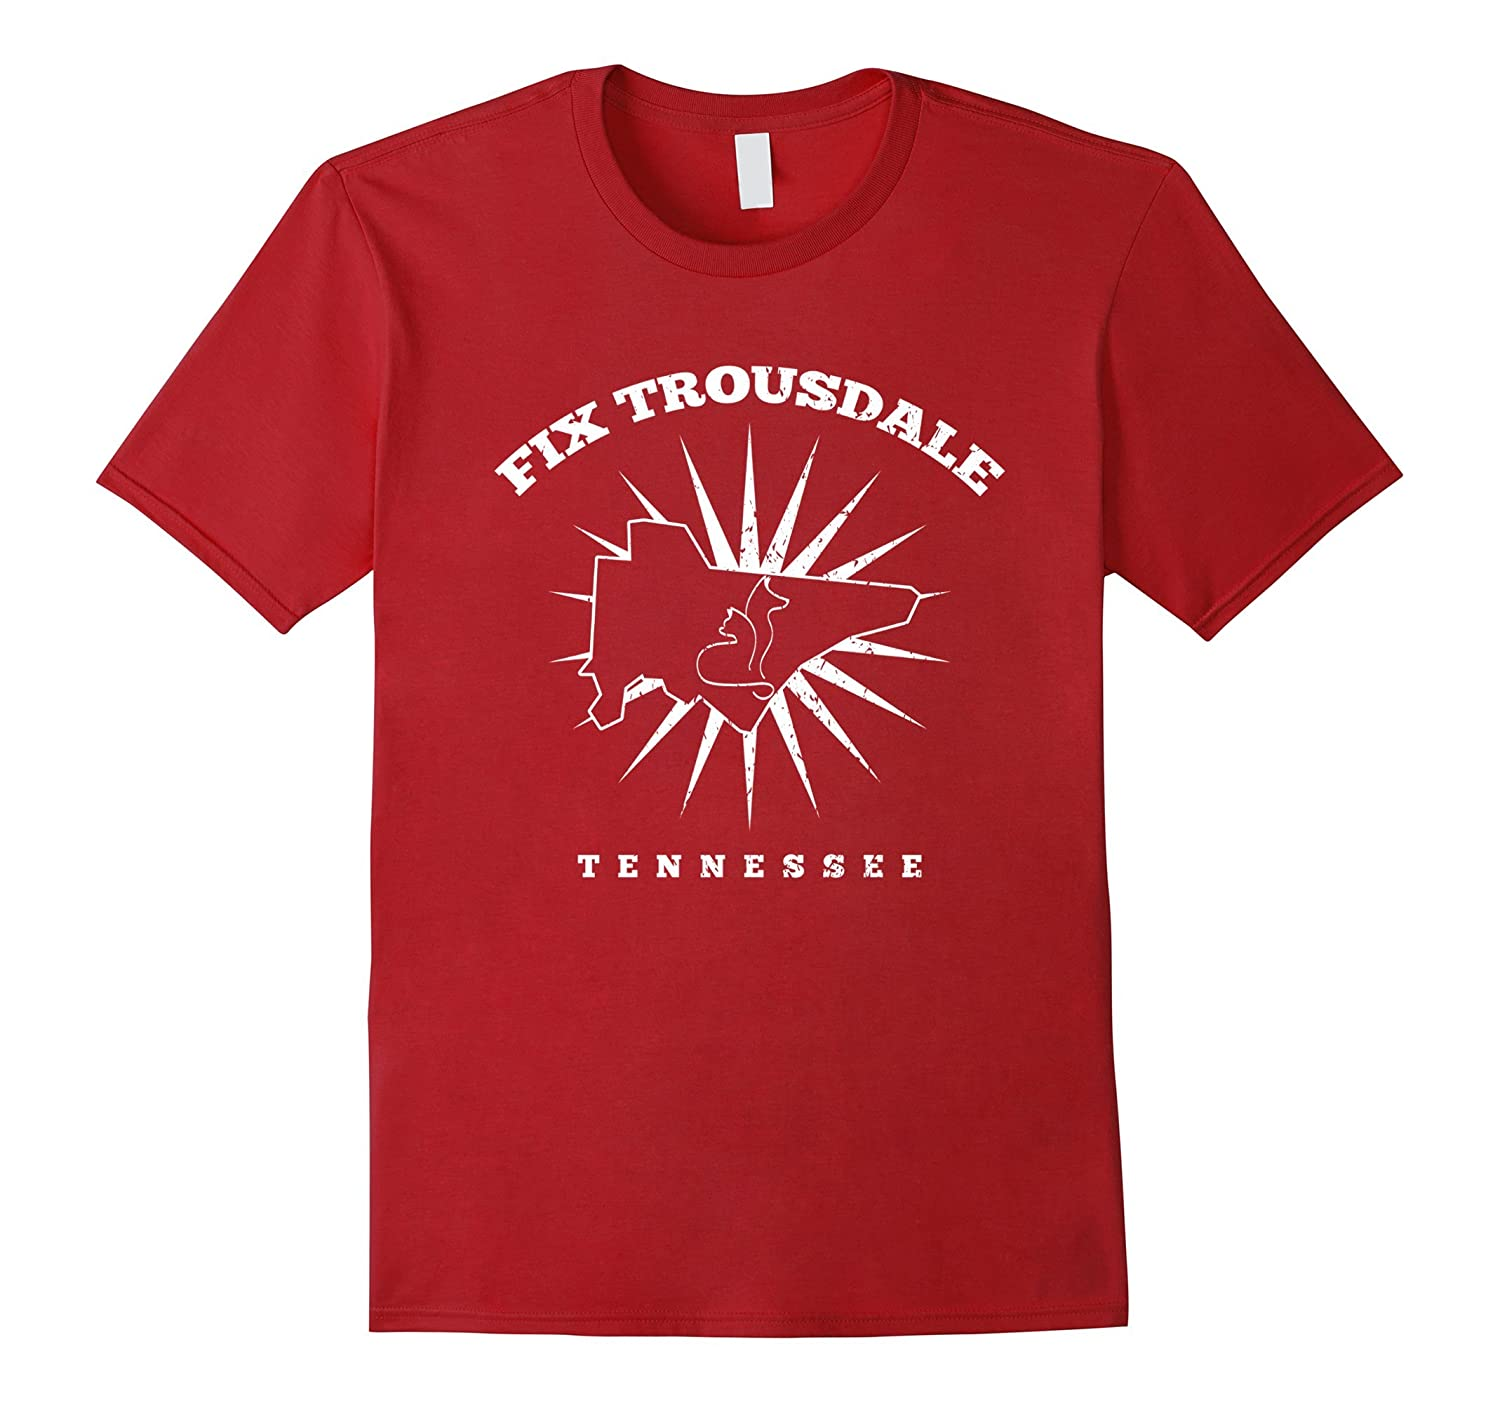 Fix Trousdale Tennessee T-Shirt Save Life Spay And Neuter-Art